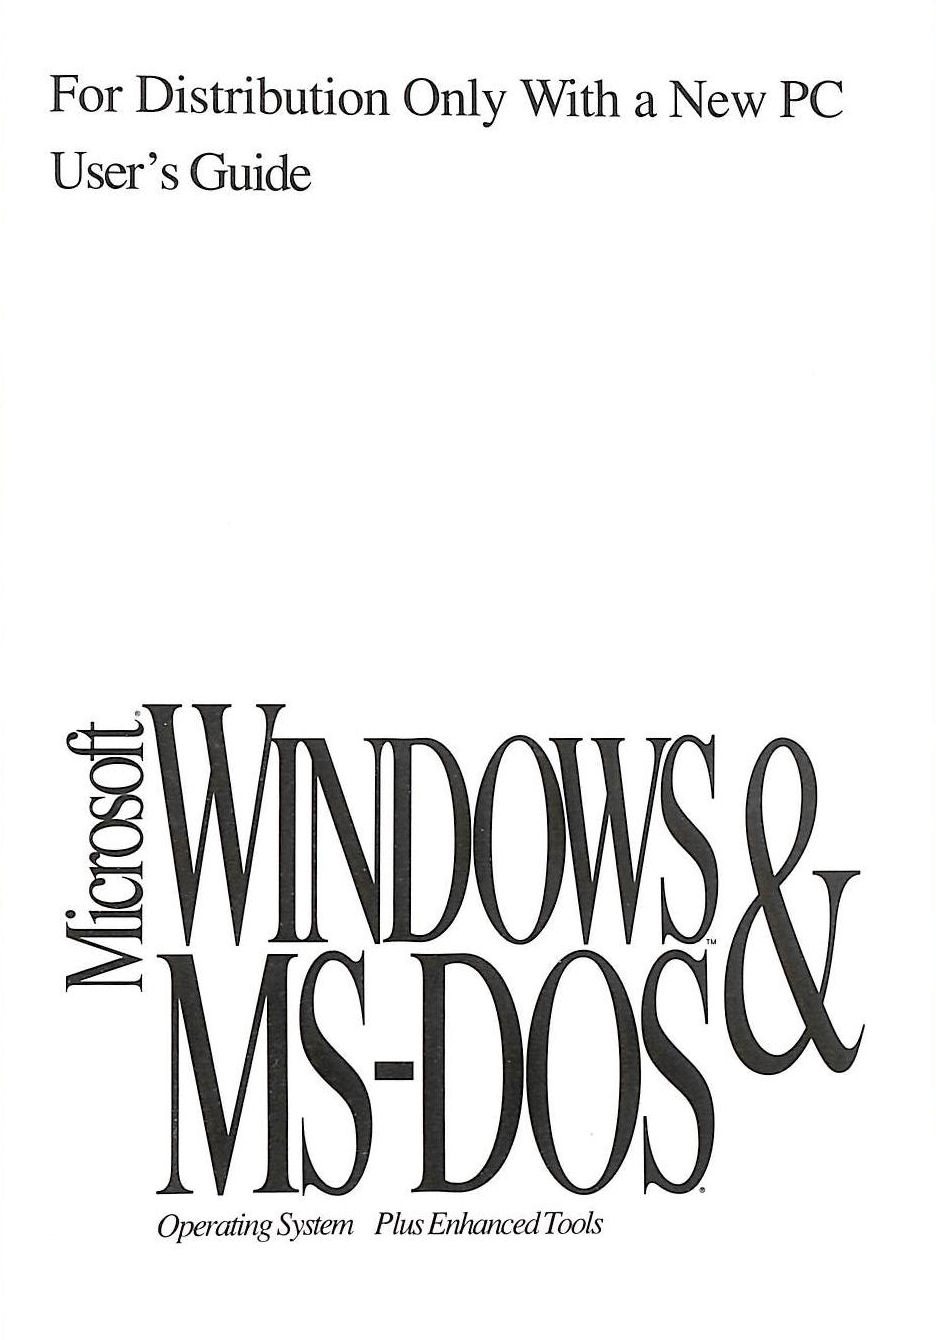 Image for Microsoft Windows [3.1] and MS-DOS [6.22]